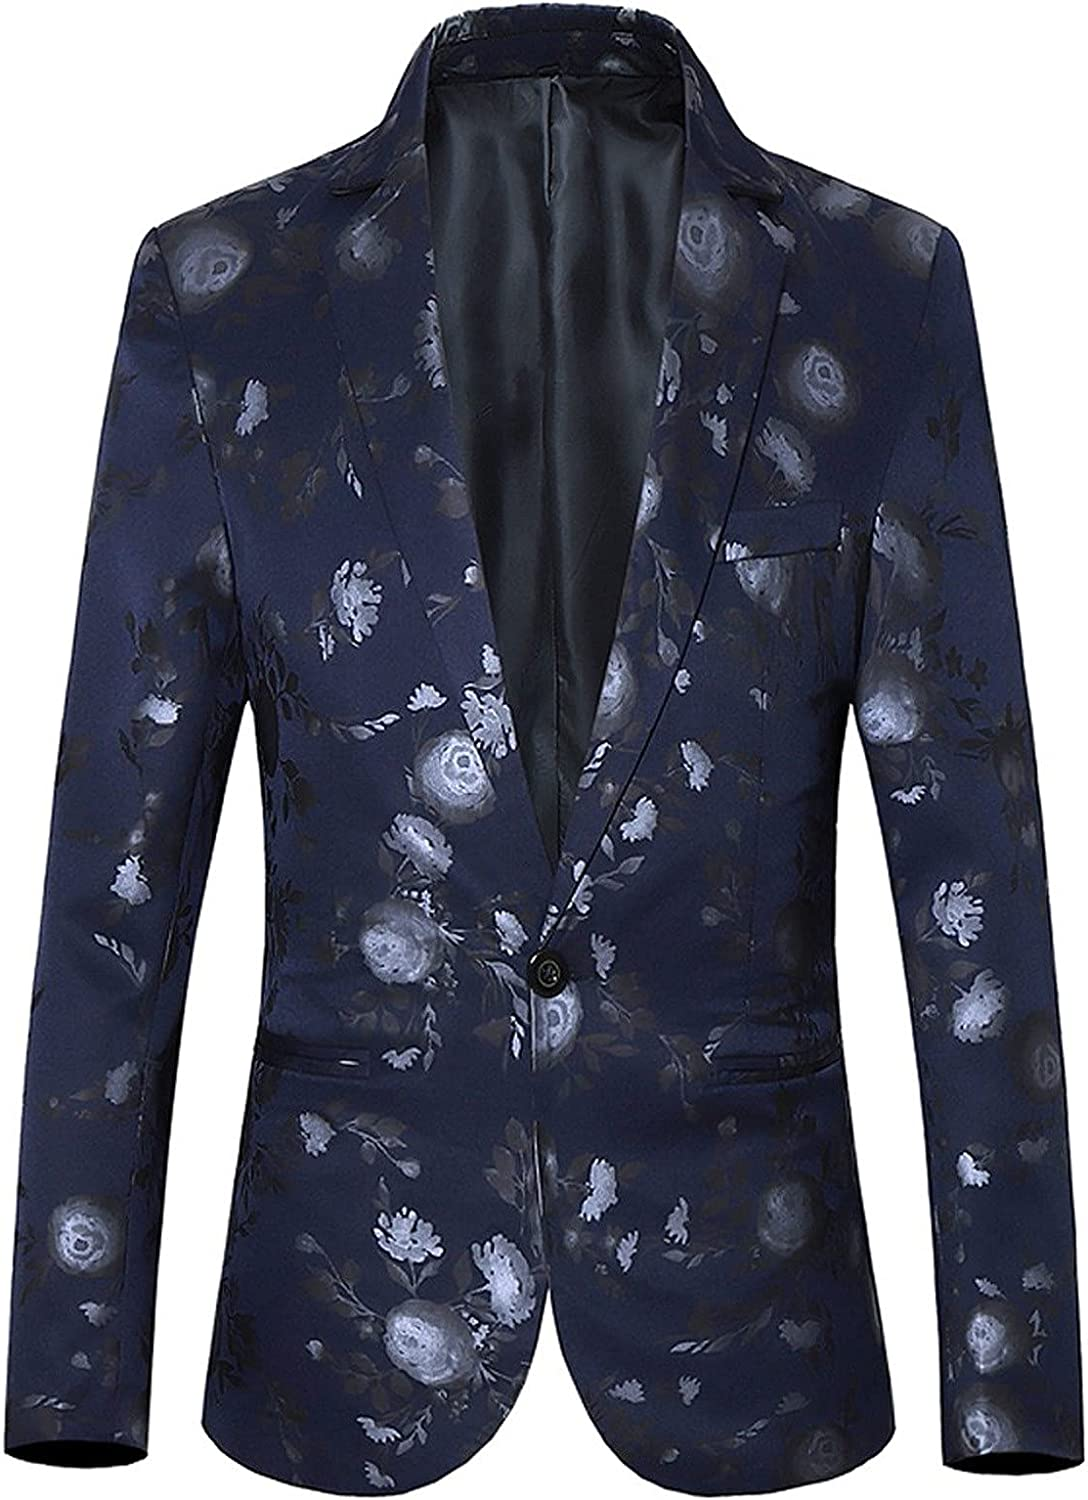 Men's Suit Jacket Long Sleeve Slim Fit Floral Print One Button Tuxedo Blazer for Business Wedding Party Prom